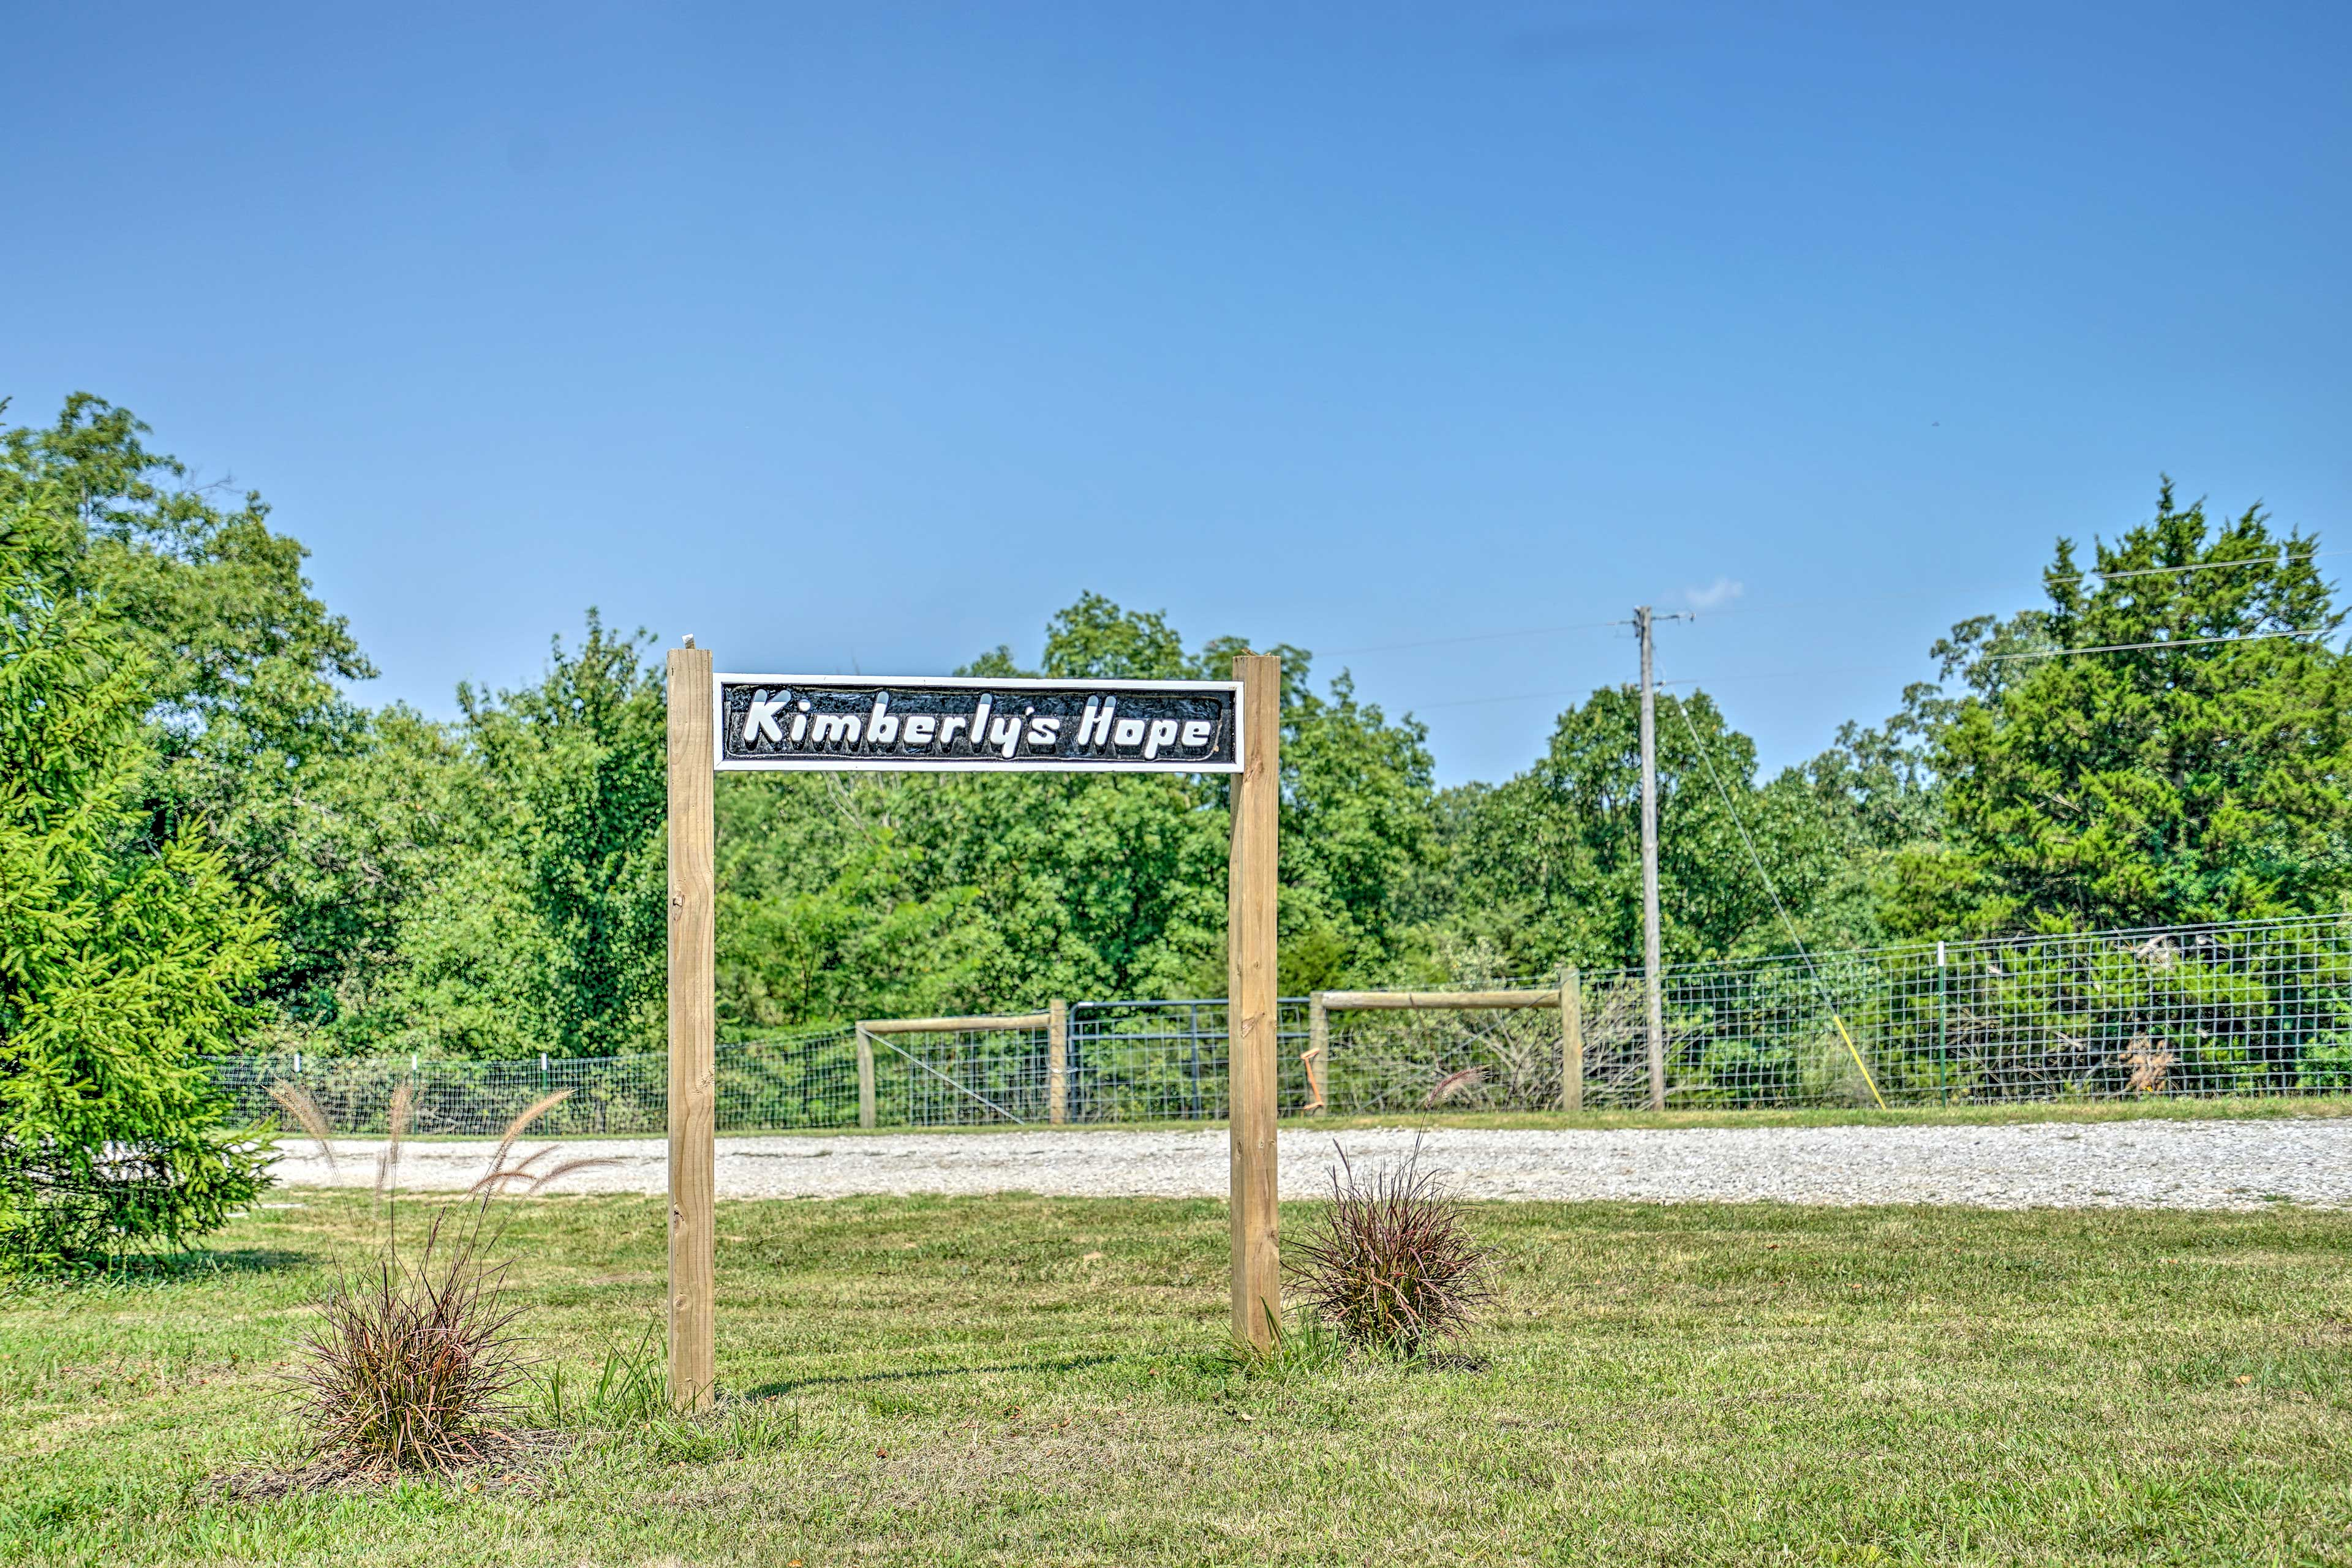 Book your stay at 'Kimberly's Hope' today!